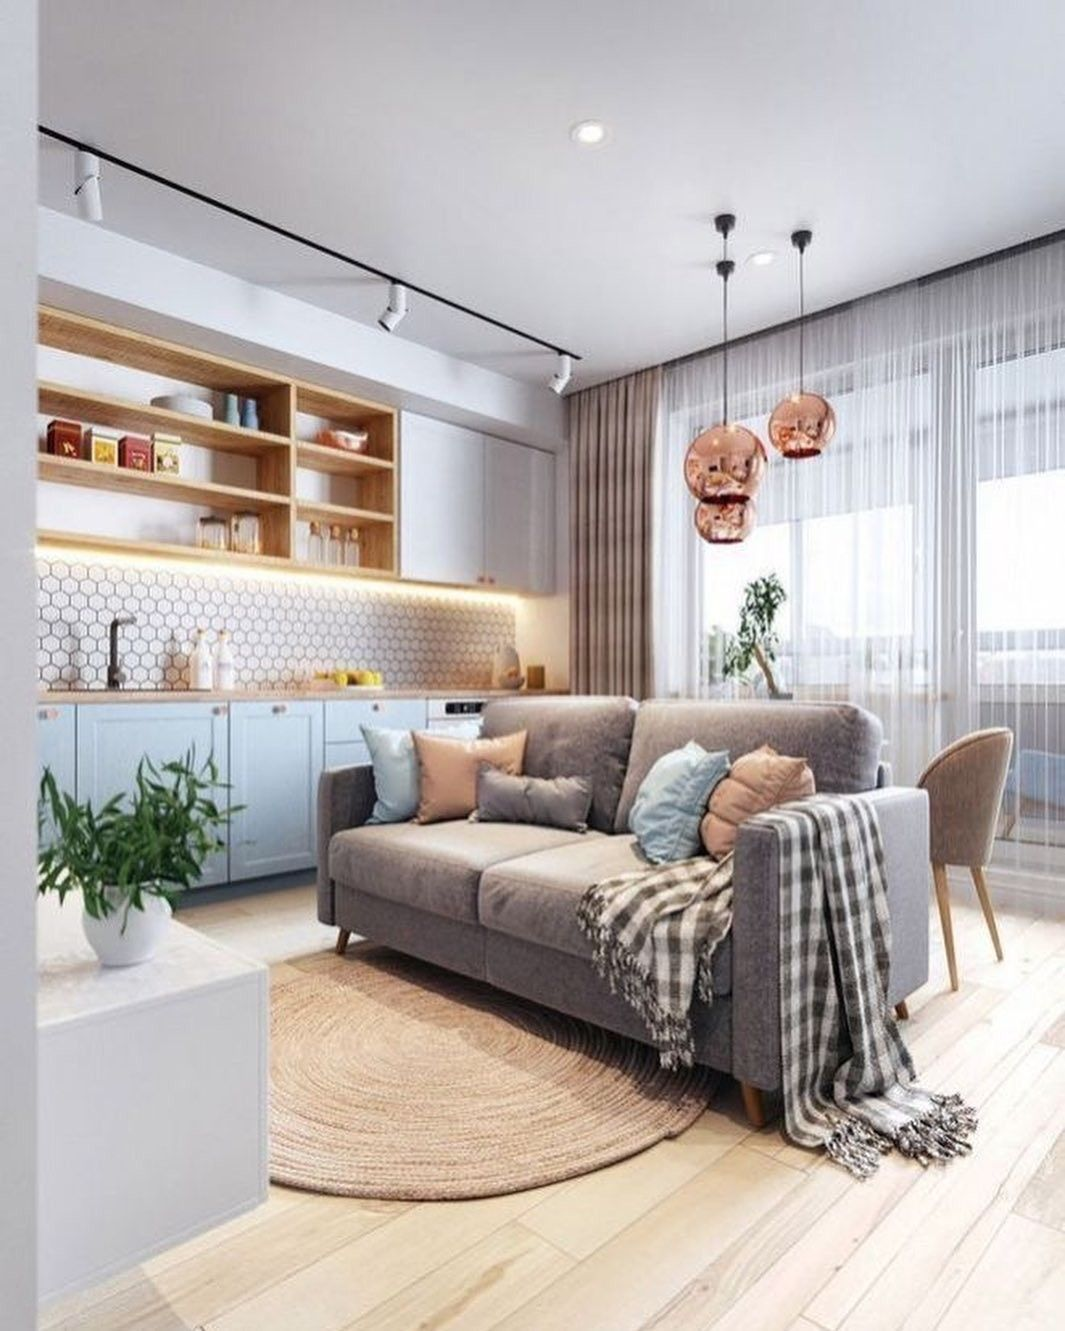 70 Favorite Small Living Room Decoration Ideas To Space Saving Small Apartment Interior Small Apartment Design Modern Small Apartment Design